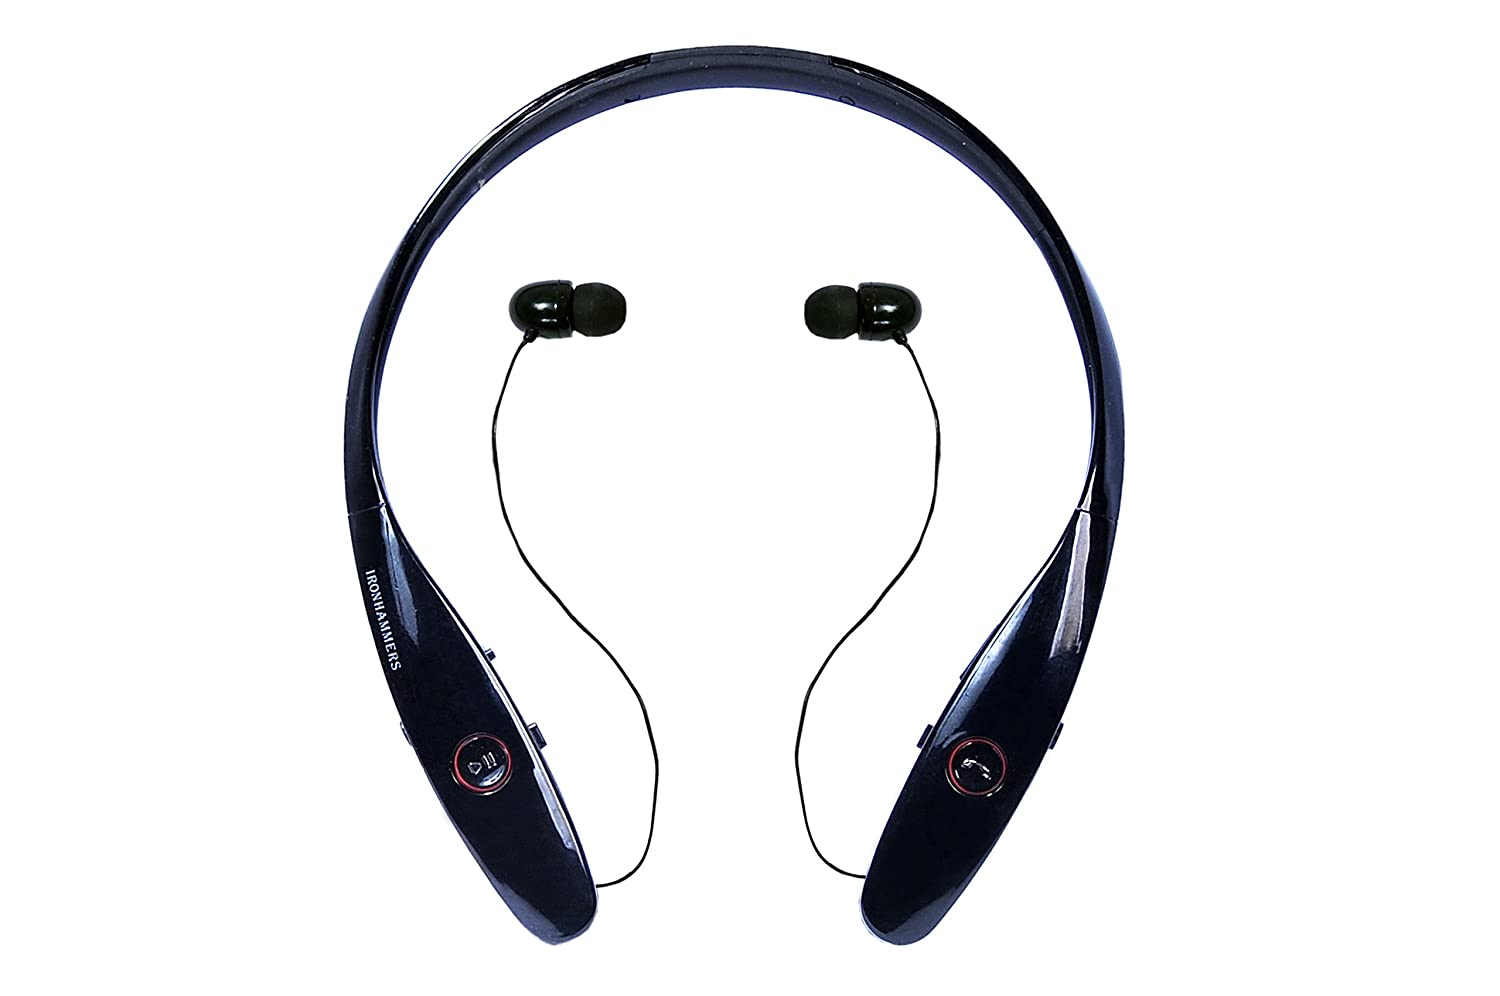 b93736f74f7 Noise Cancelling Sweatproof Neckband Bluetooth Headphones with Retractable Earbuds  Best Headphones with Microphone IRONHAMMERS 900, Running/Sports Wireless ...